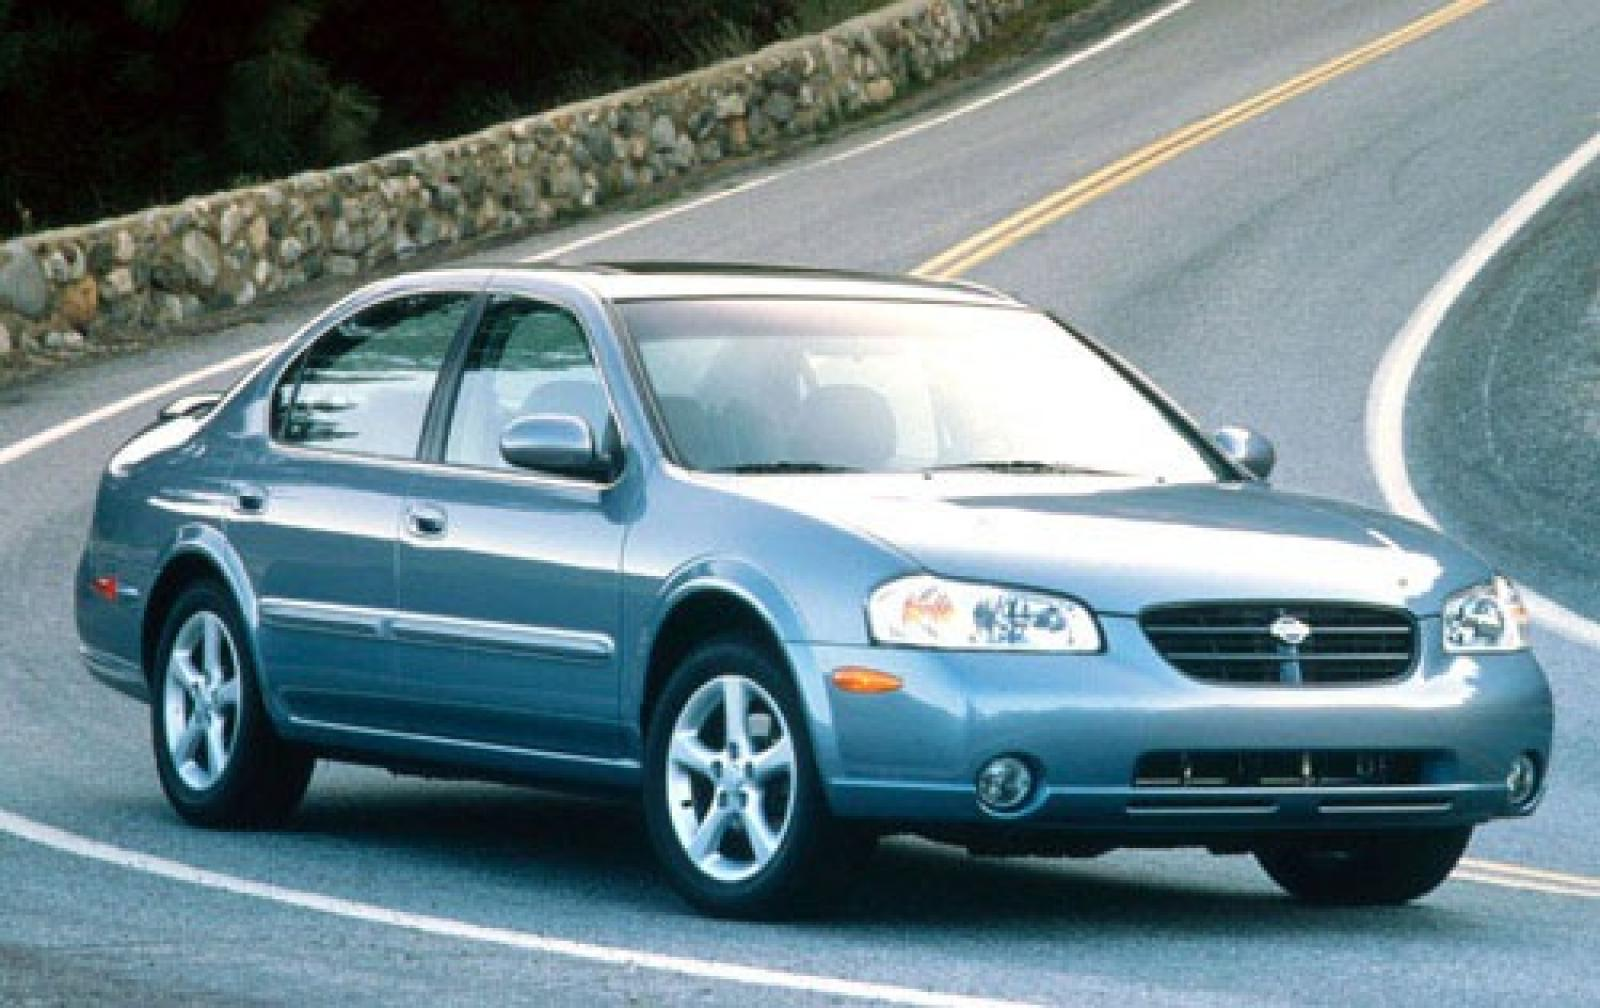 2000 Nissan Maxima Information And Photos Zombiedrive